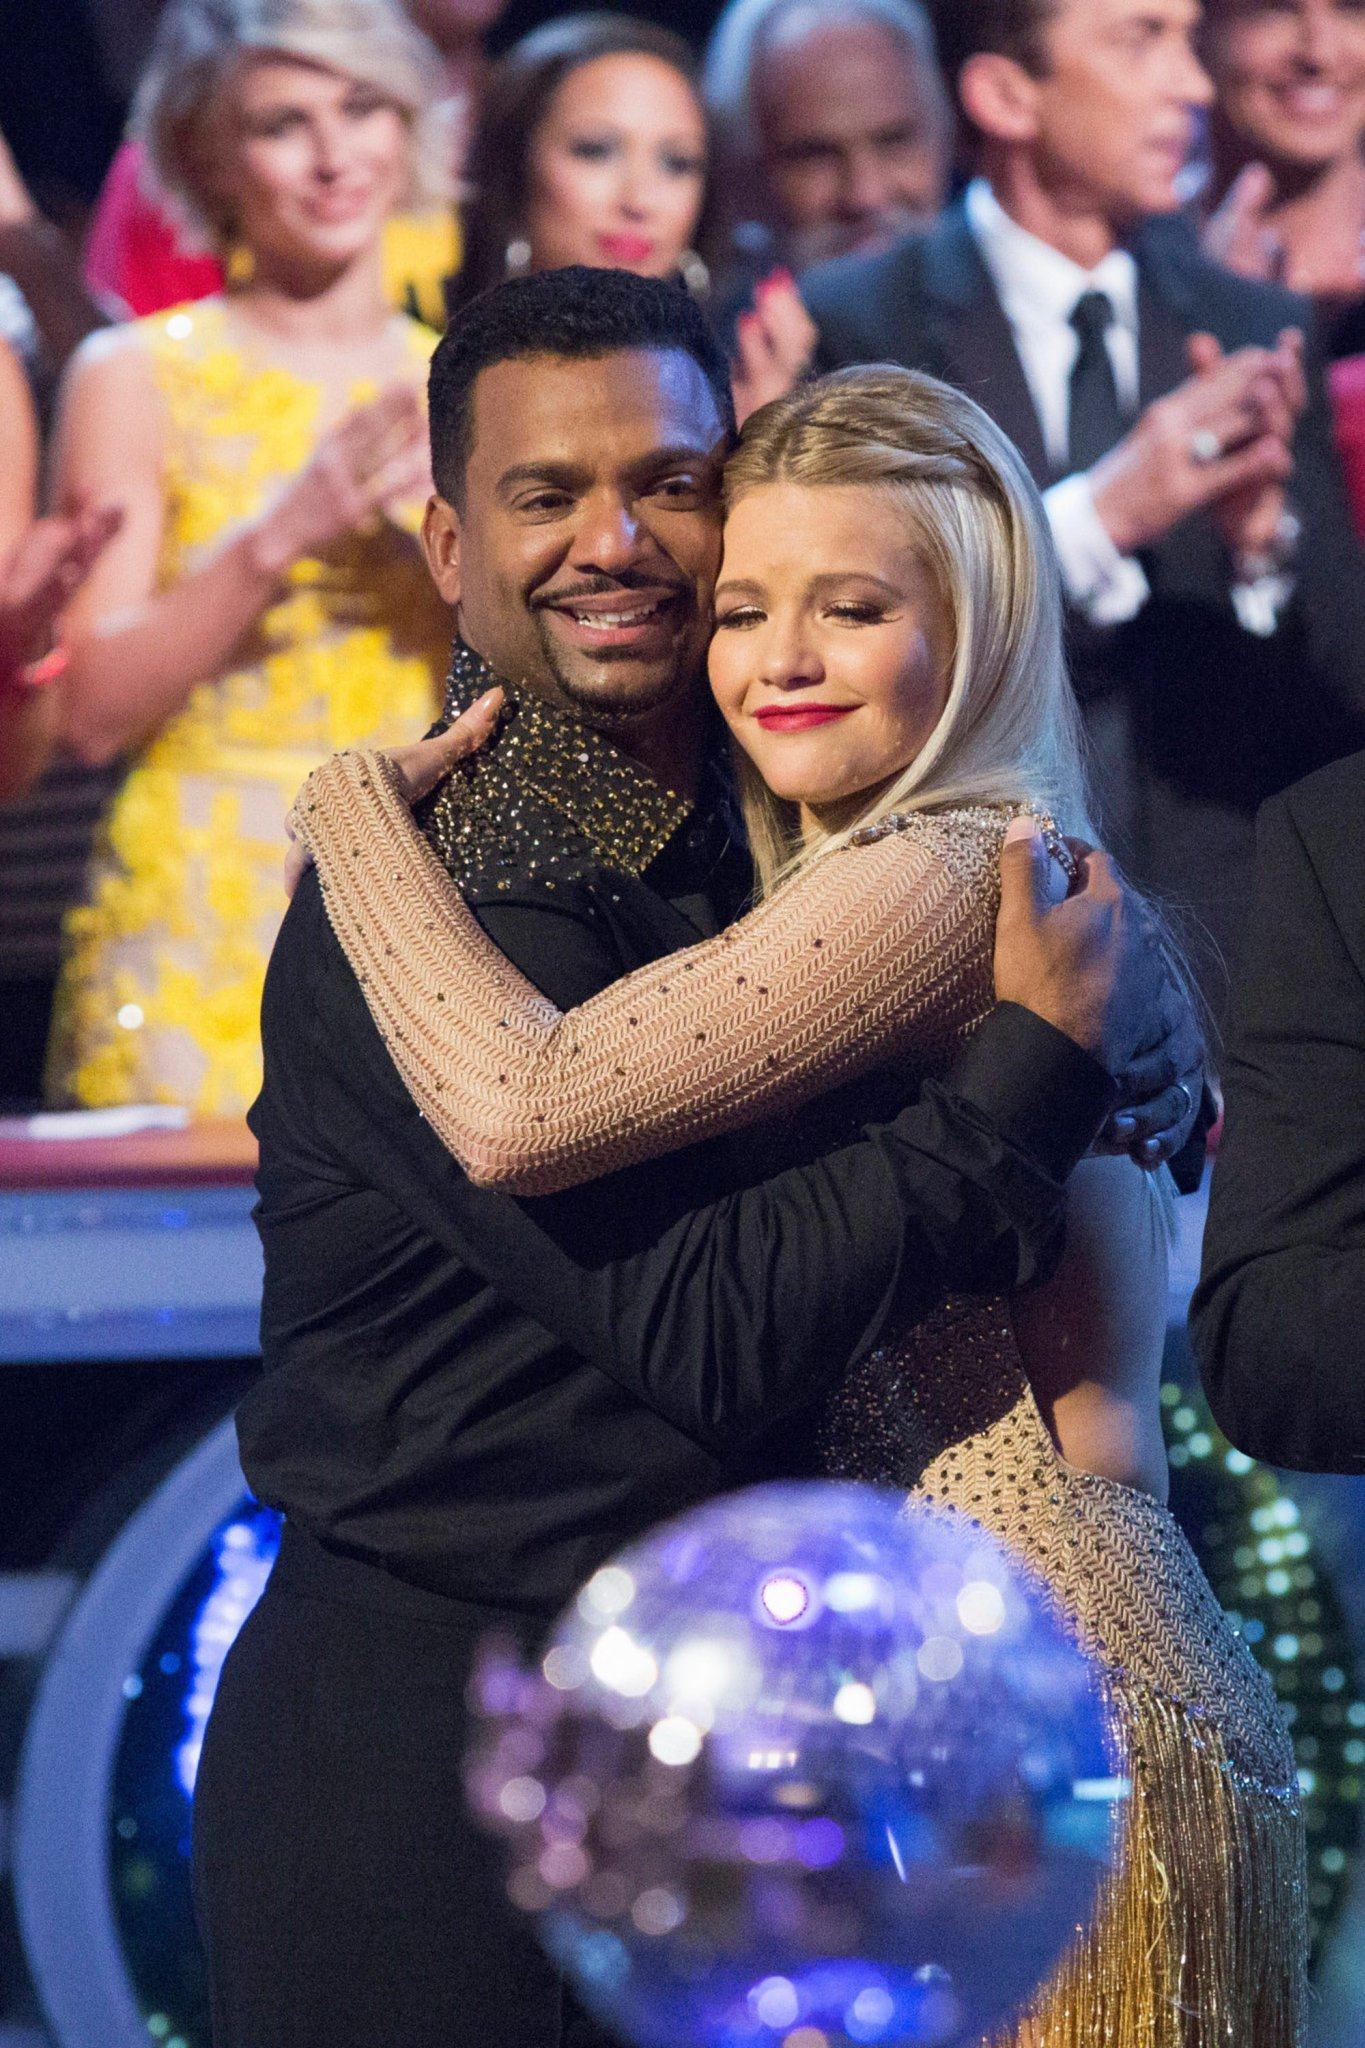 Dancing With The Stars: 10 Best Seasons Ranked - Fame10